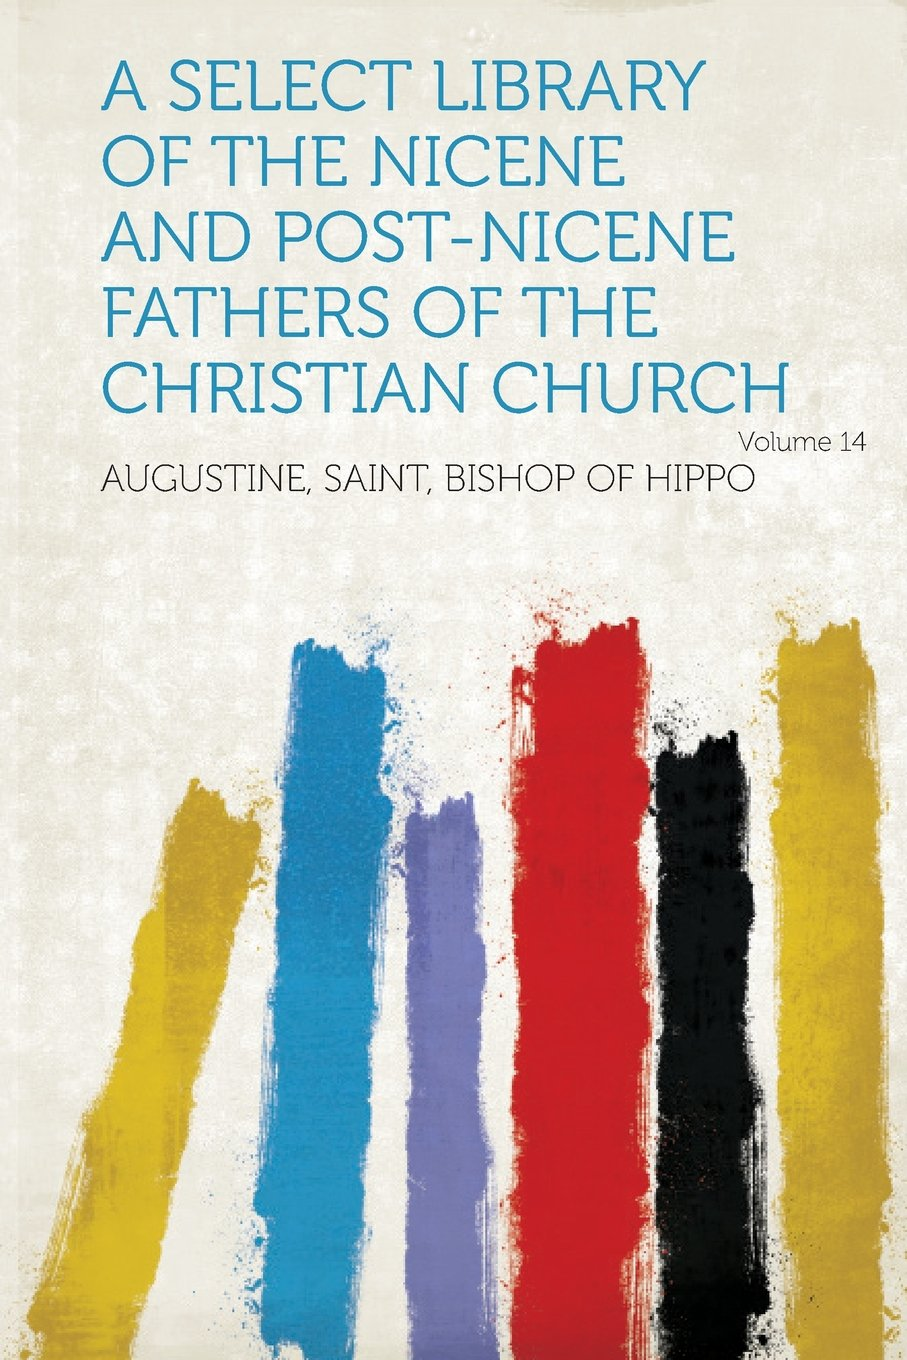 Download A Select Library of the Nicene and Post-Nicene Fathers of the Christian Church Volume 14 pdf epub